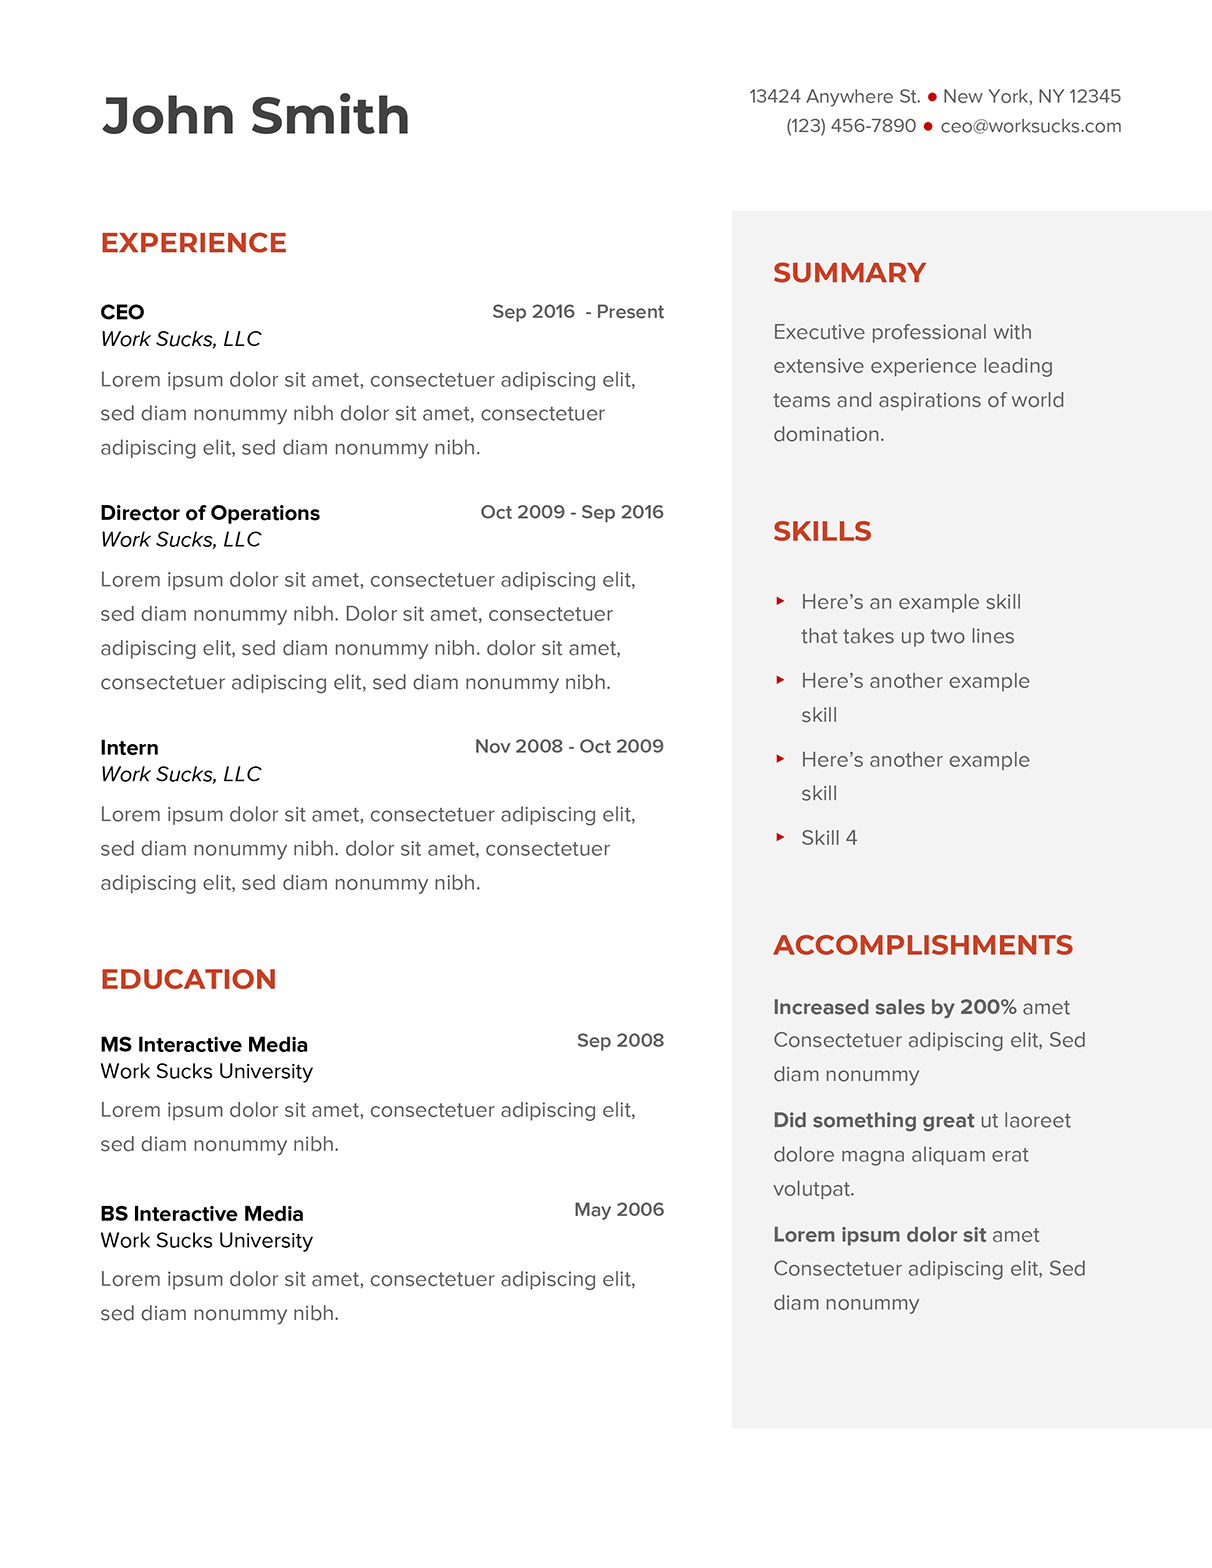 How To Make A Resume Using Google Docs Free Google Docs Resume Template Work Sucks